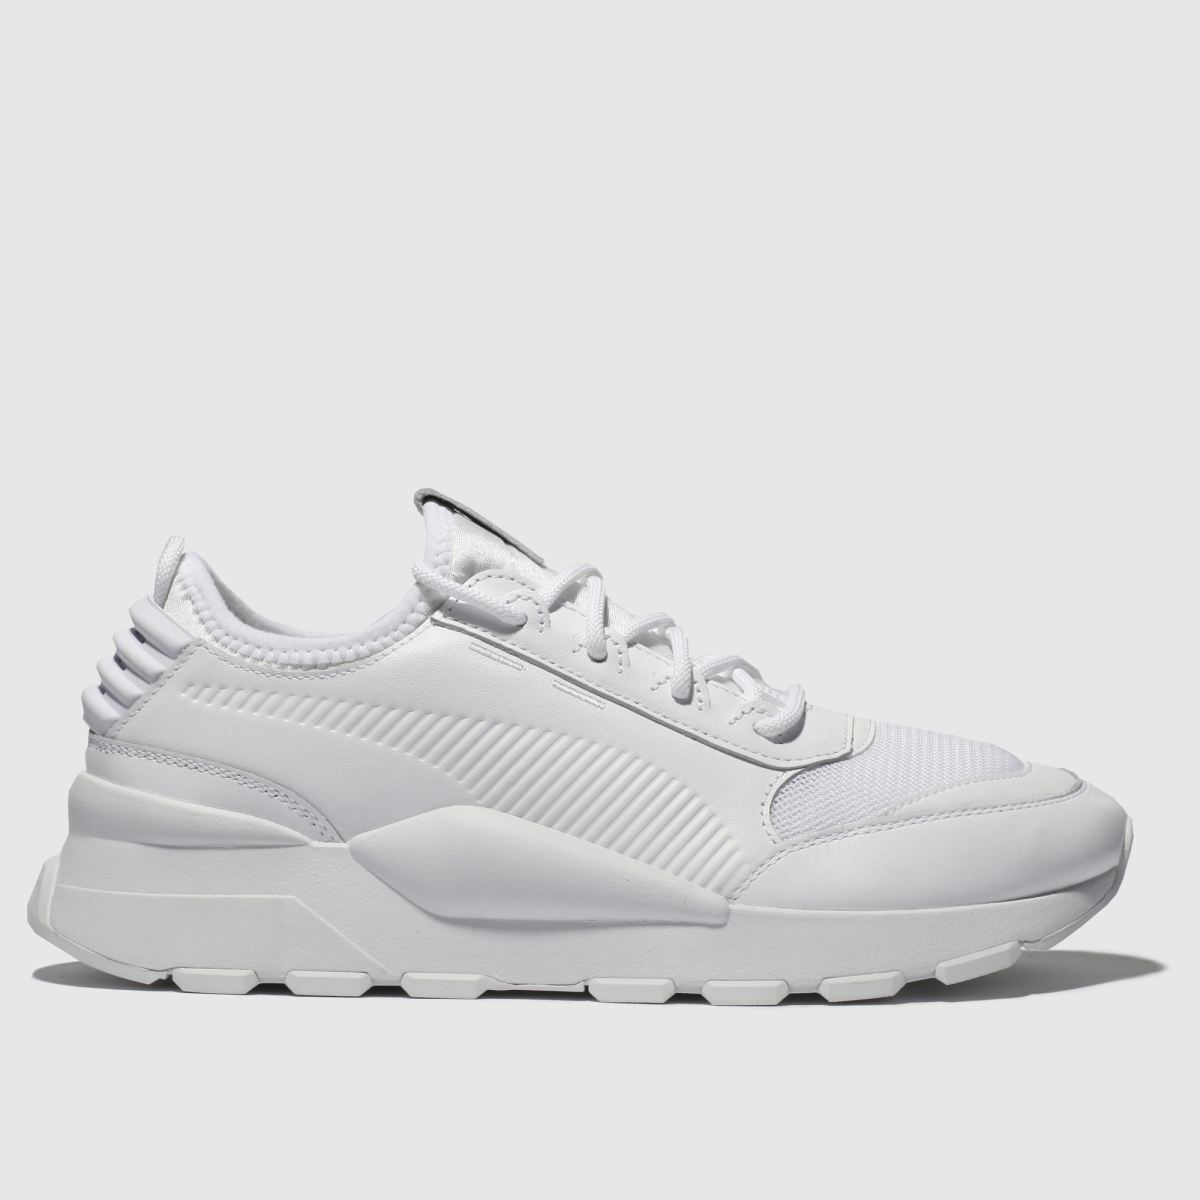 Puma White Rs-0 Trainers